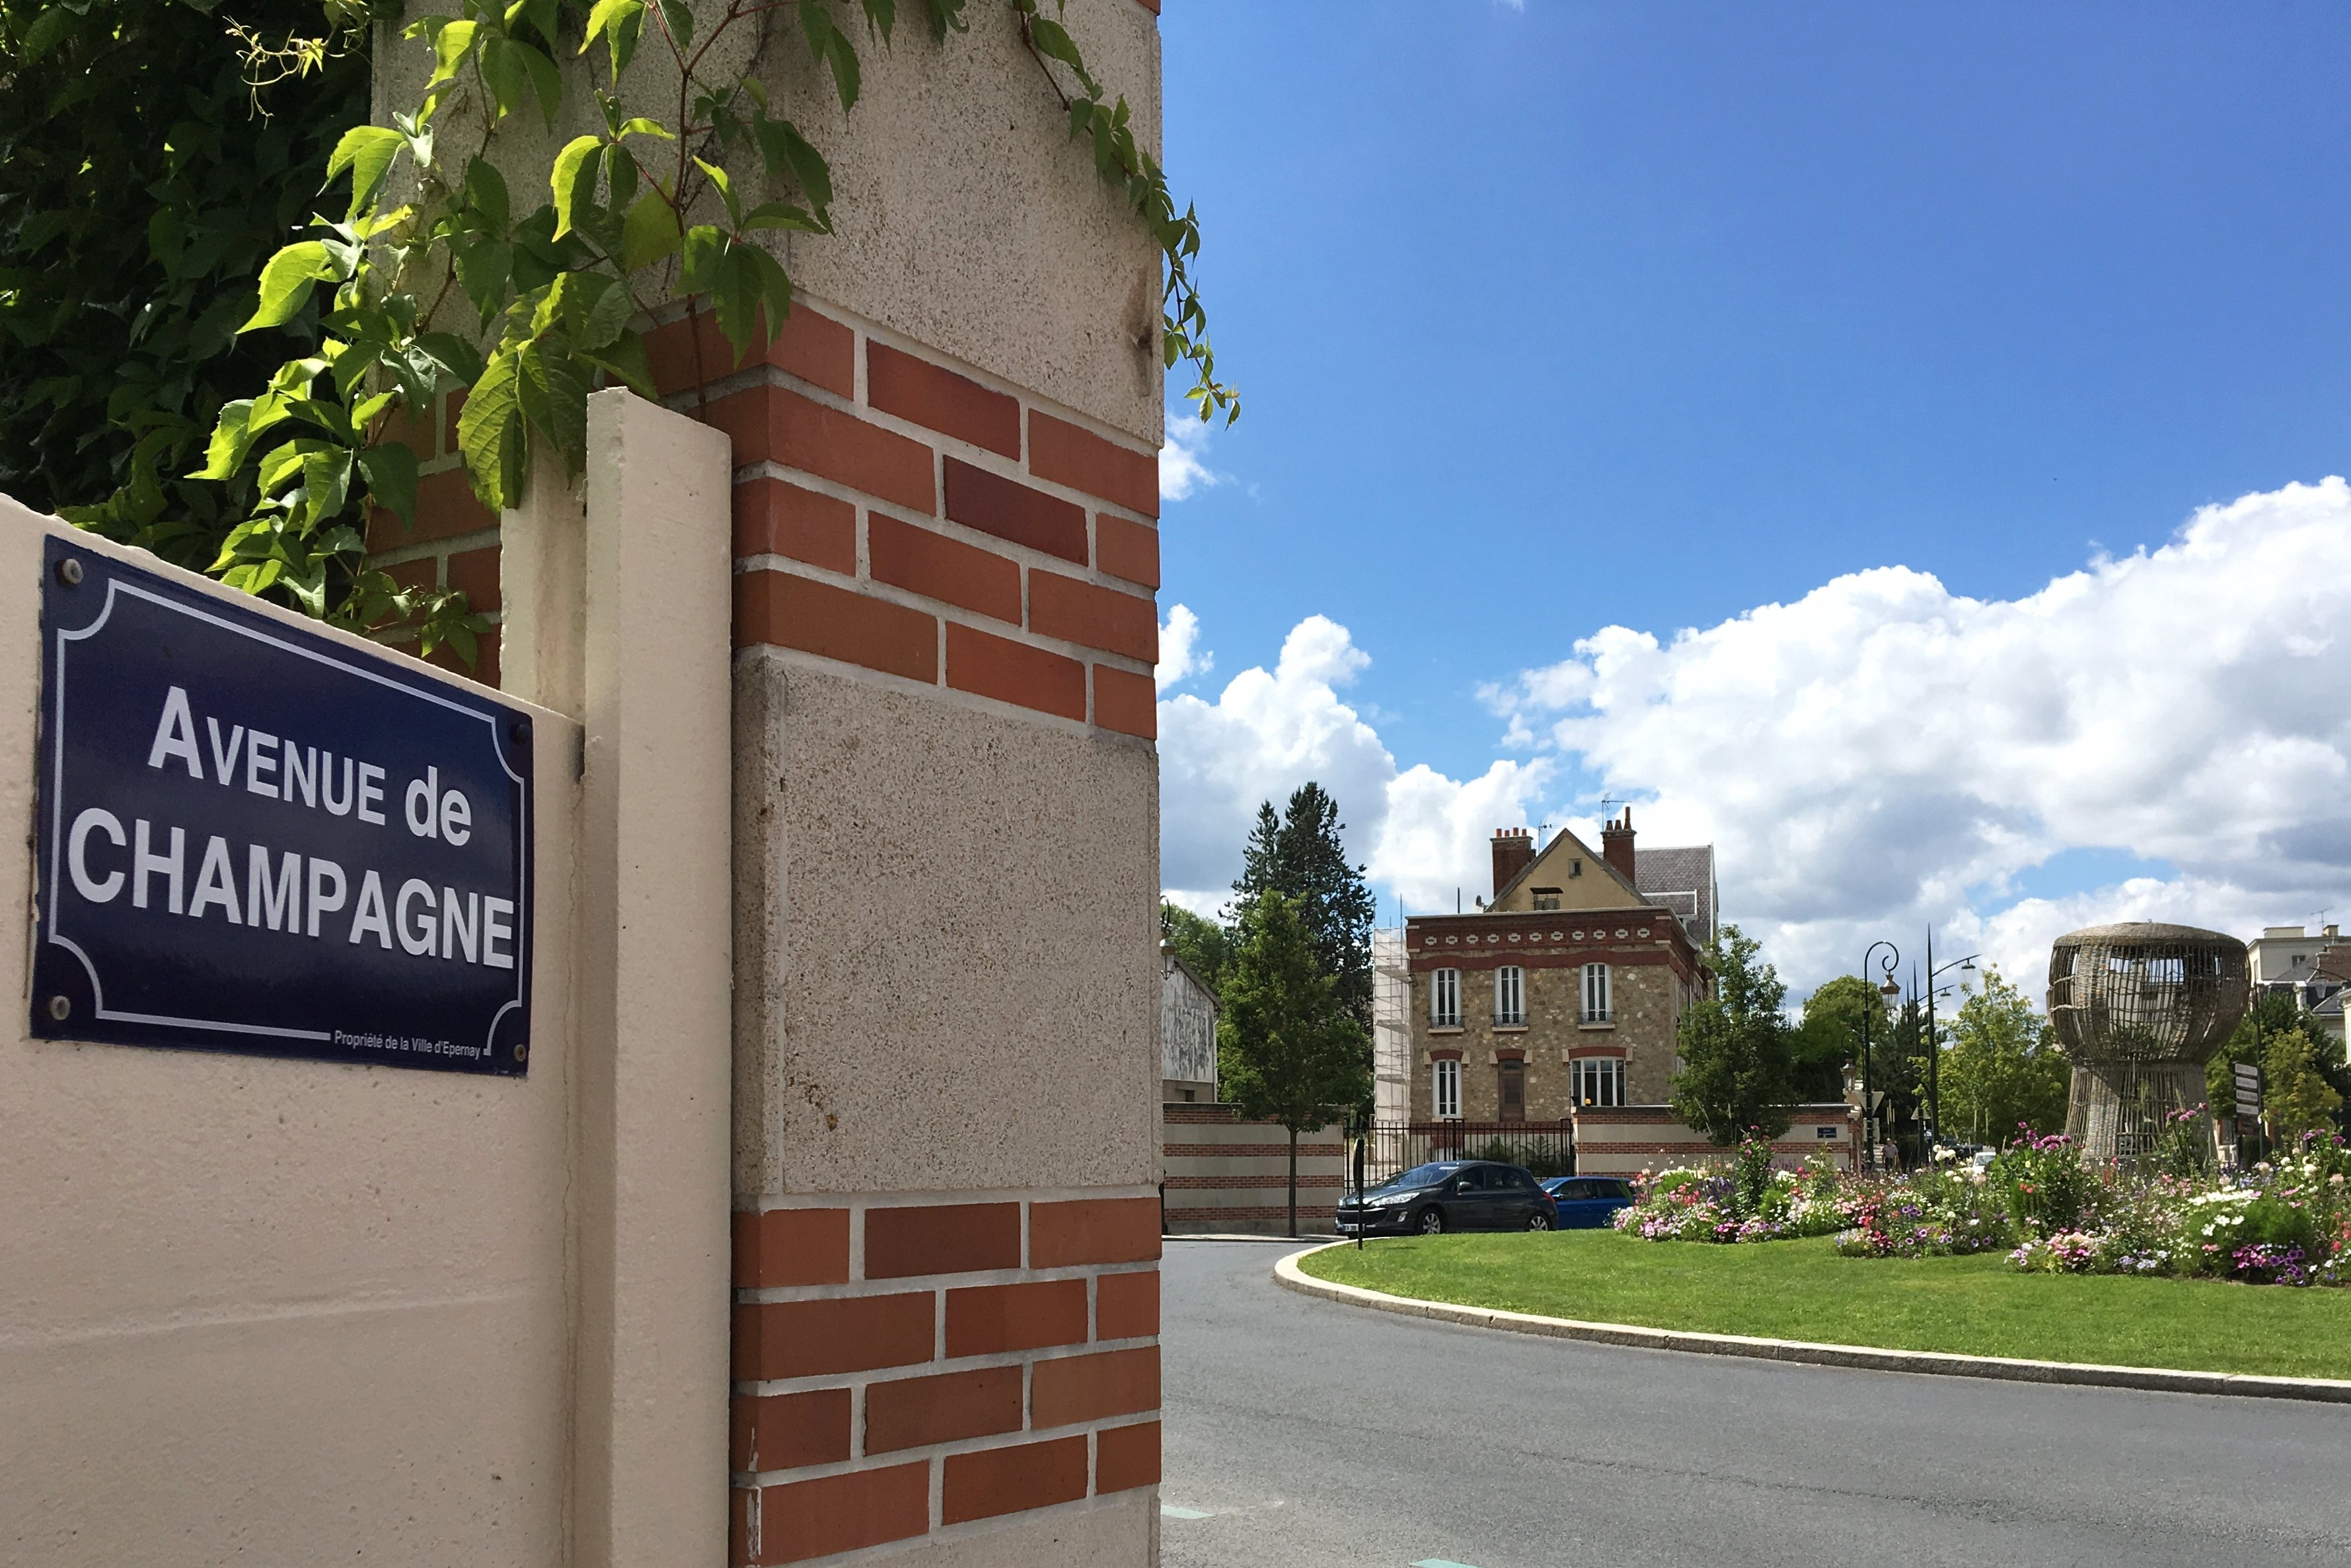 Champagne Avenue sign Epernay France